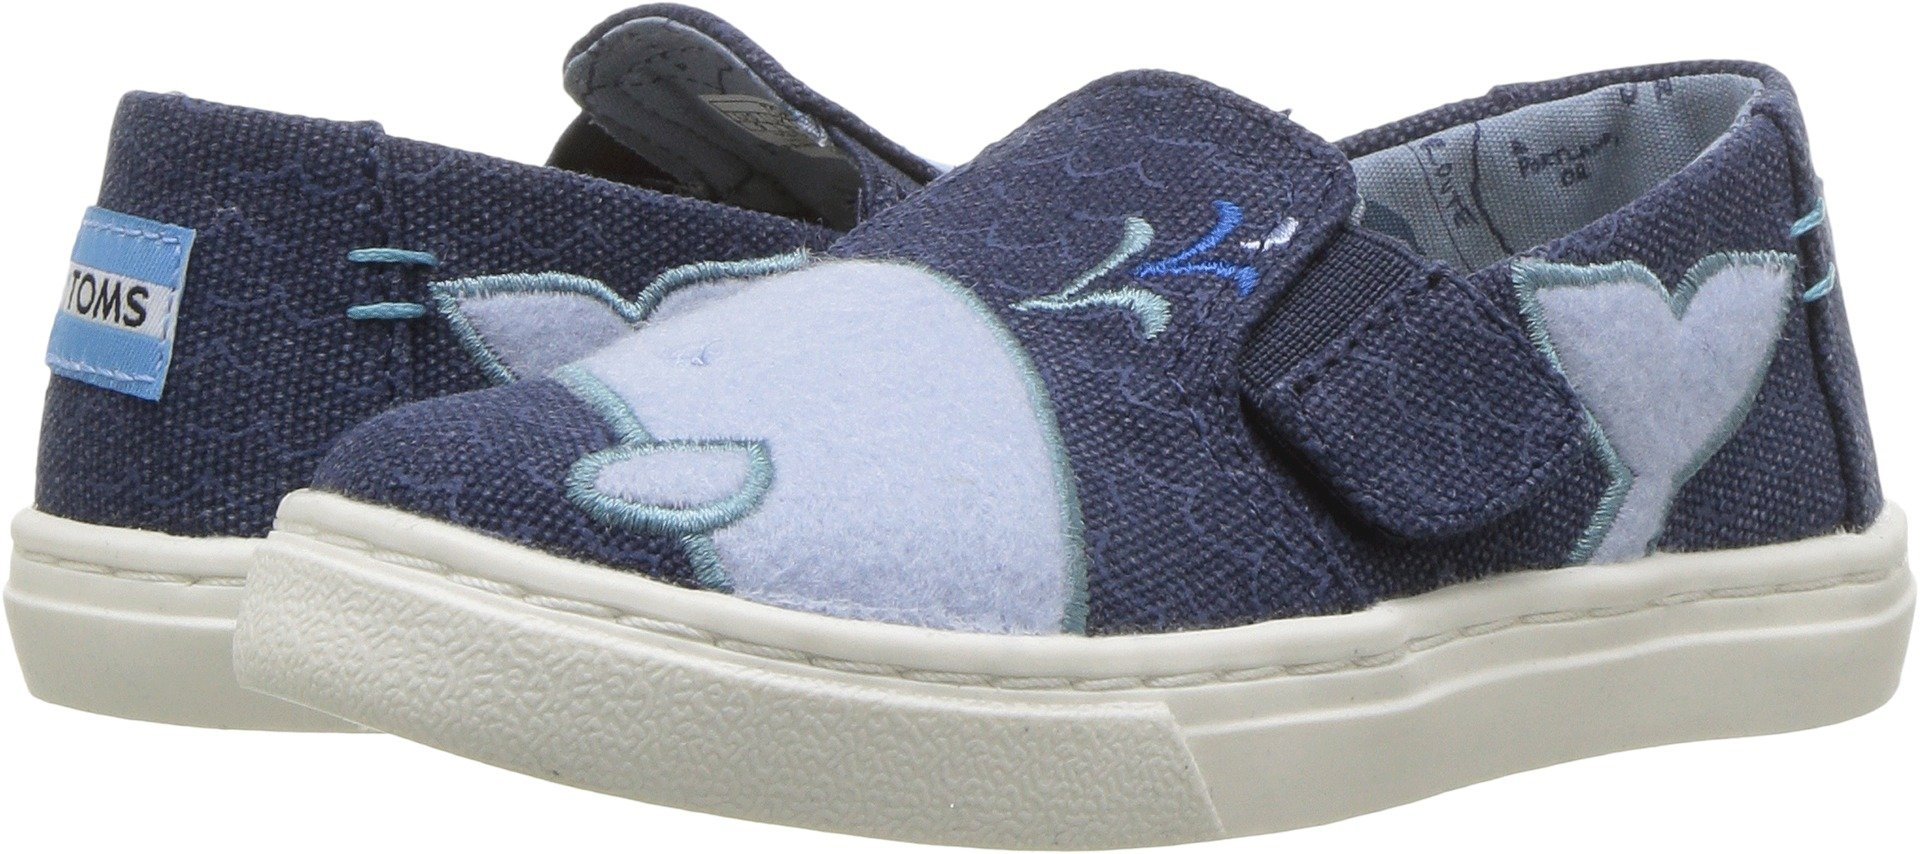 TOMS Kids Unisex Luca (Infant/Toddler/Little Kid) Blue Whale Patch 6 M US Toddler